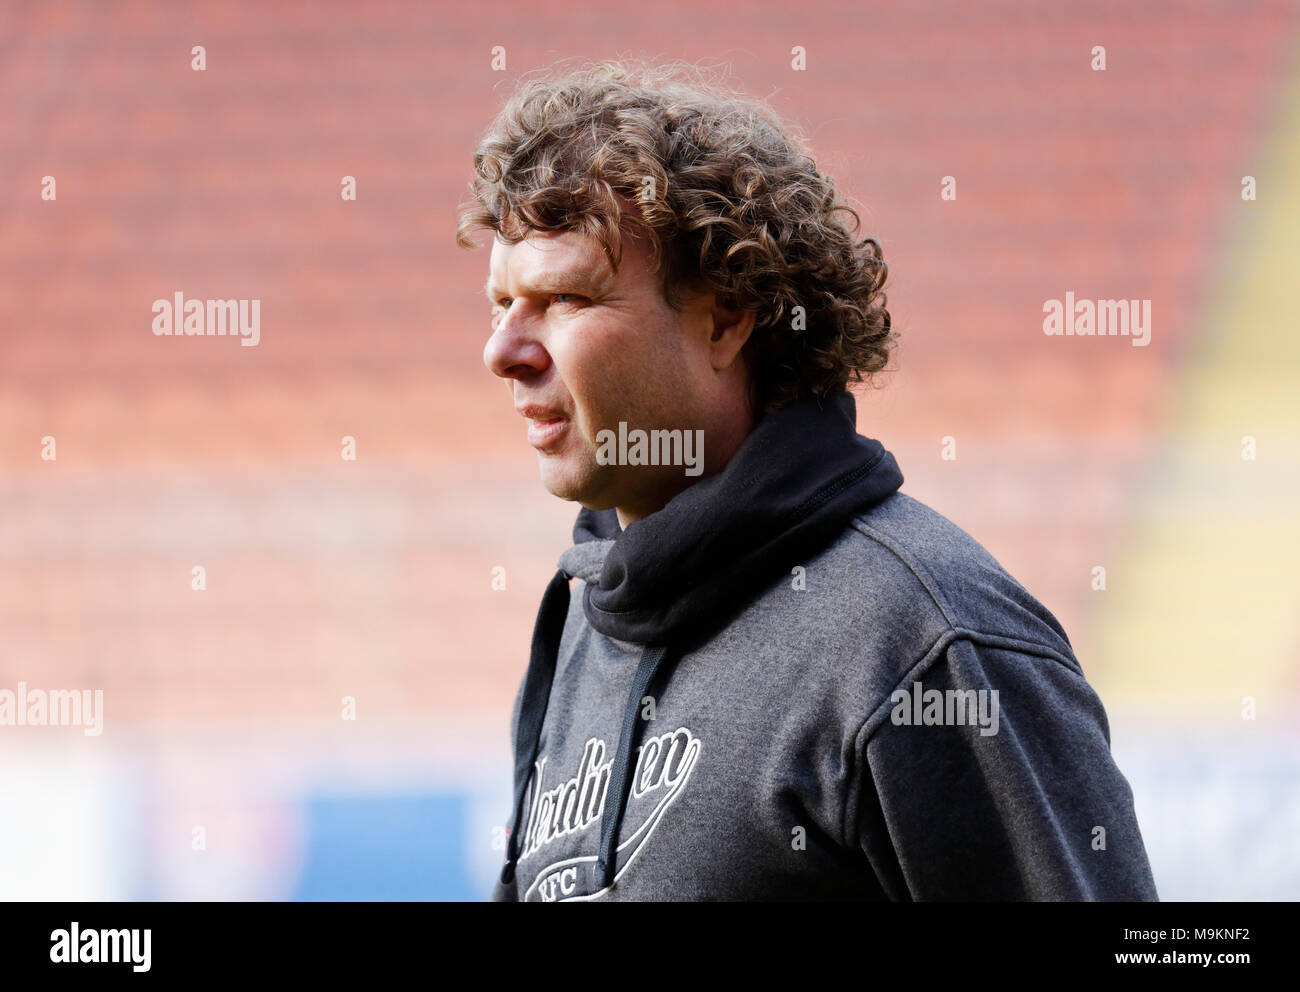 sports, football, Regional League West, 2017/2018, Grotenburg Stadium in Krefeld-Bockum, KFC Uerdingen 05 vs FC Viktoria Koeln 1904 1:1, head coach Stefan Kraemer (Uerdingen) - Stock Image